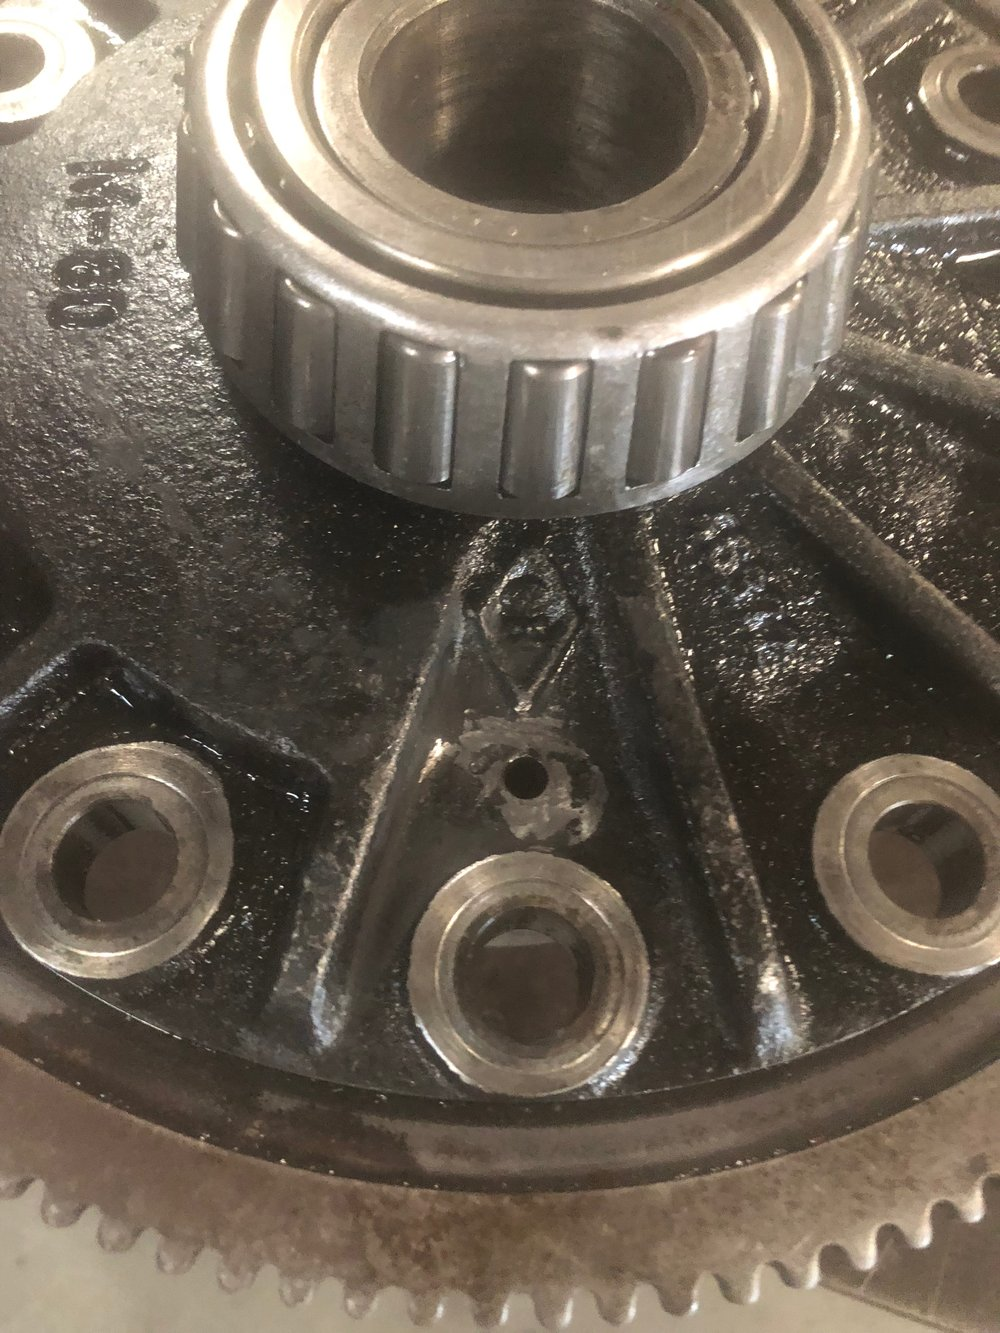 Roll Pin hole that had to be de-burred and machined to relieve now Mushroomed Roll Pin.